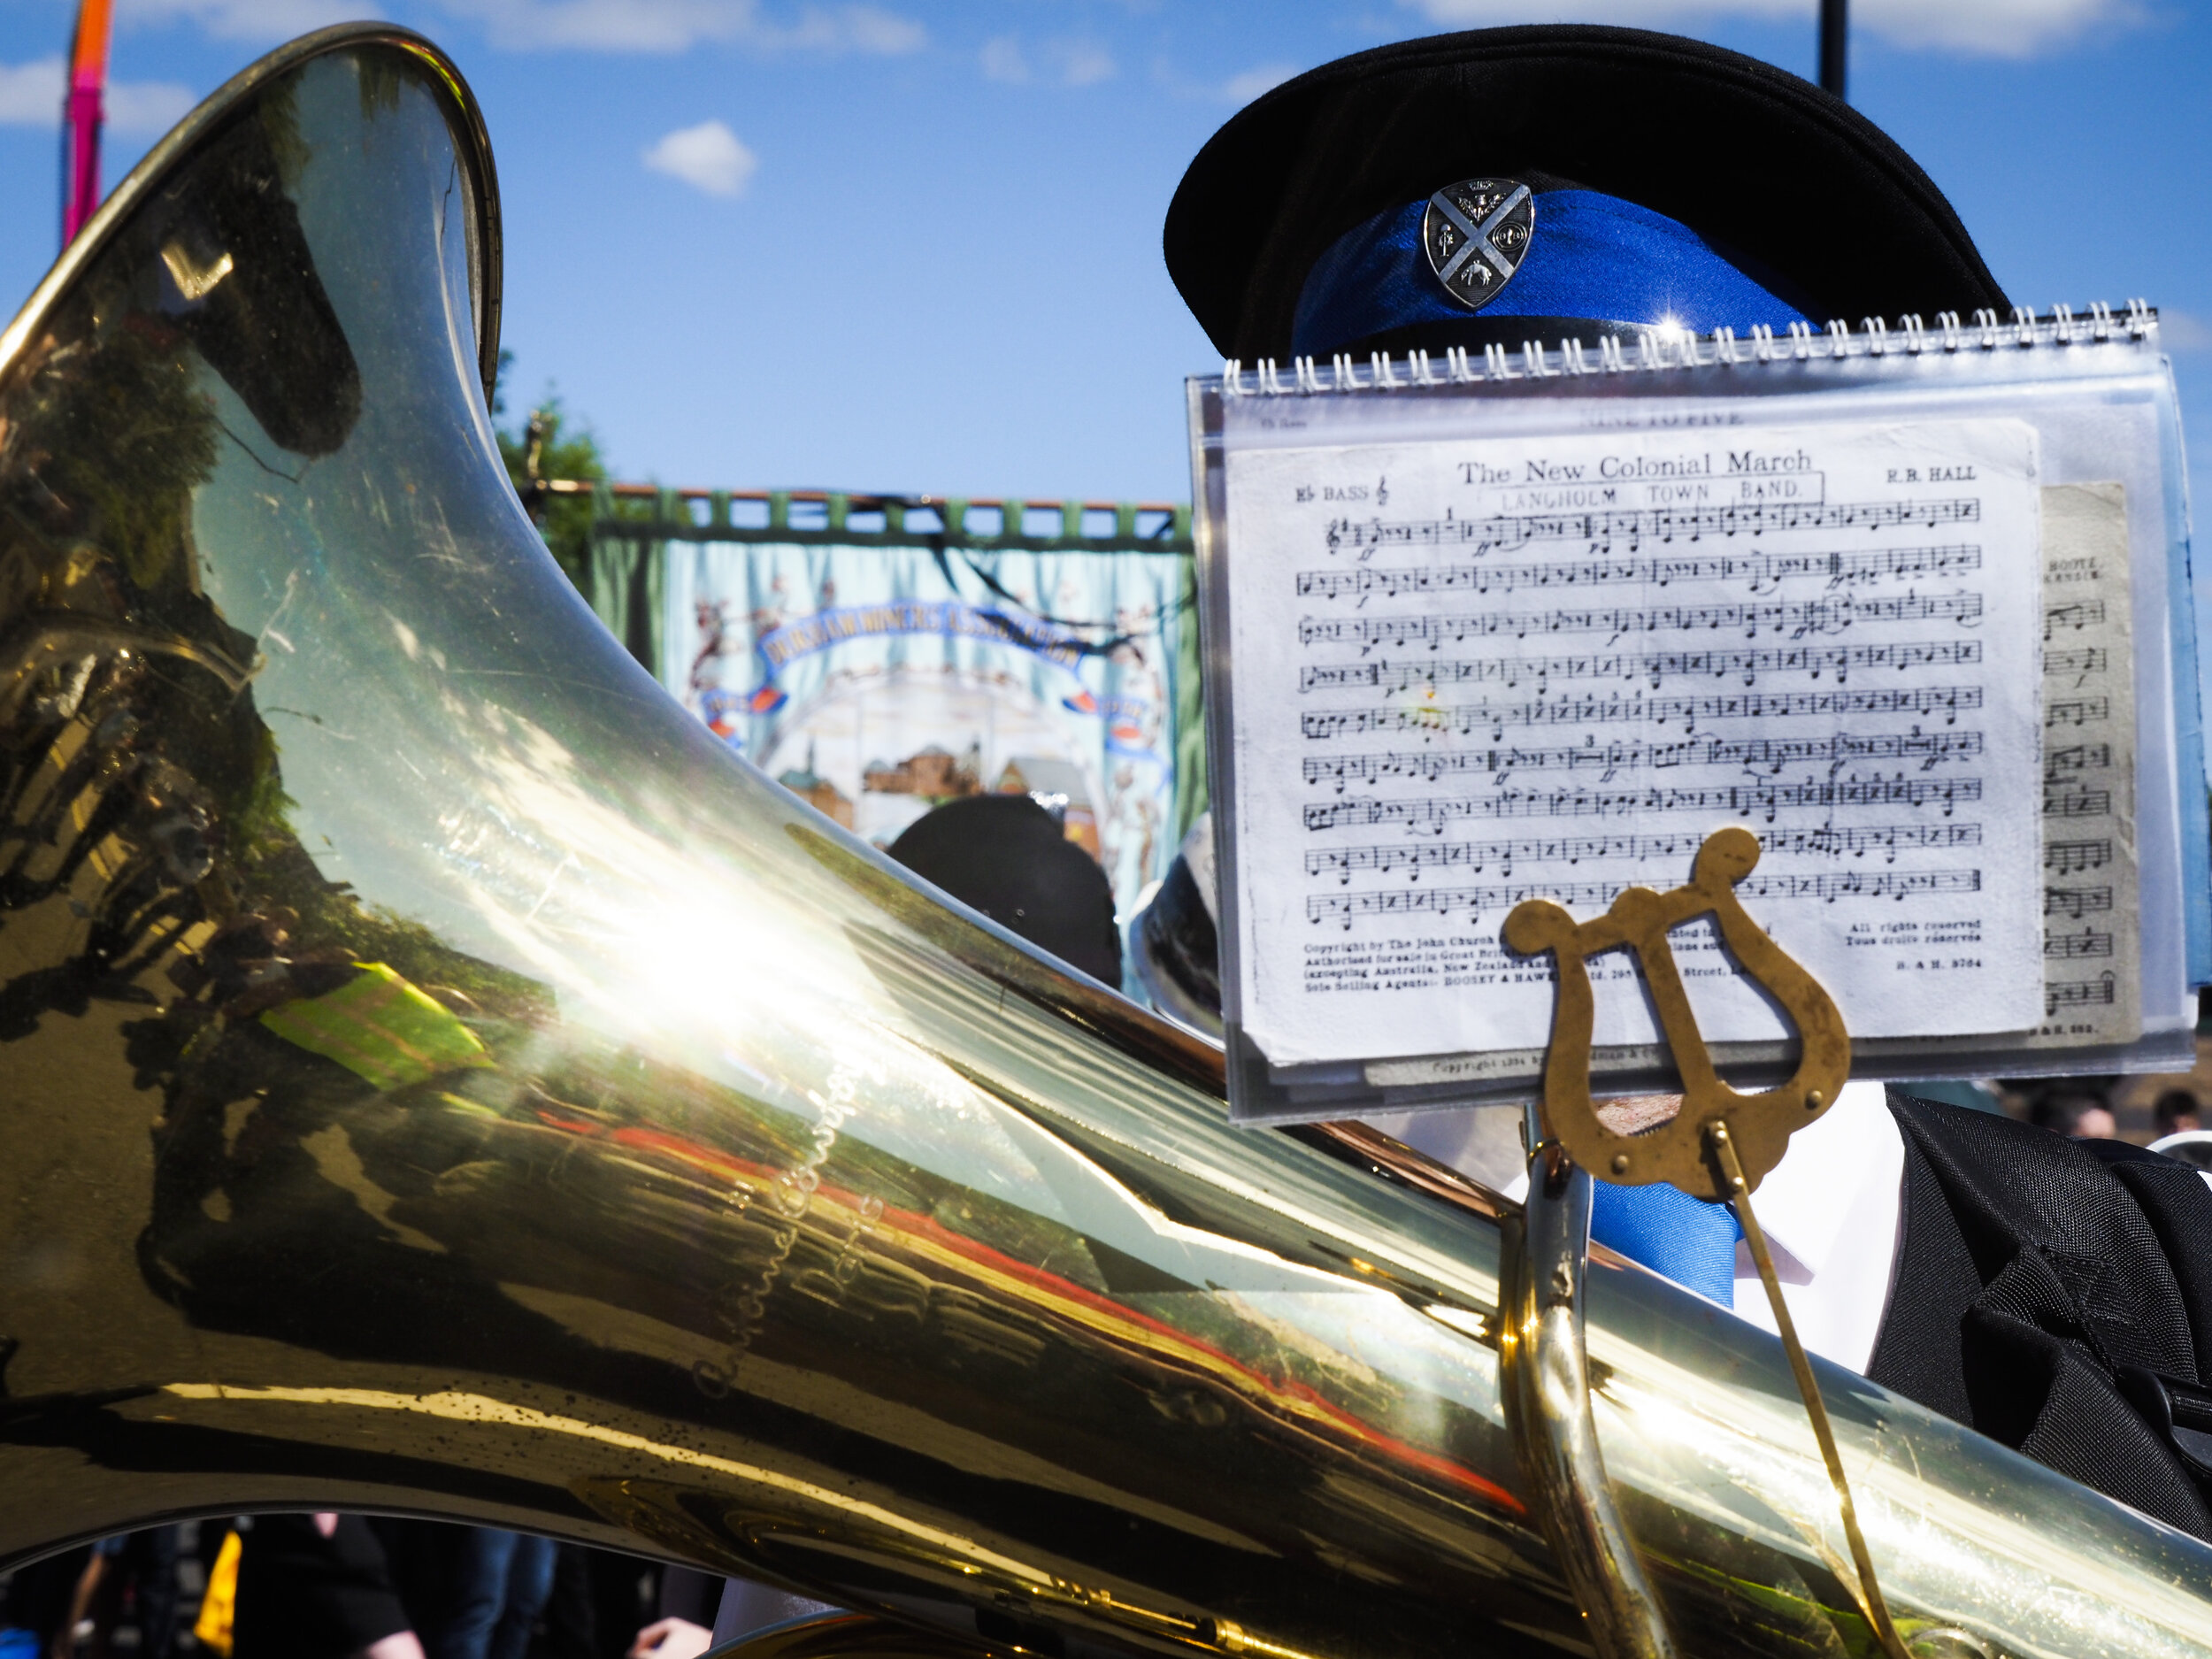 2017 Durham Miners Gala. 8/7 2017.Personal EditThese are some photos  I shot at the Durham Miners Gala last year. I was on commission for a couple of trade unions, but once I got my commitments to them out of the way, I went off to have a bit of fun and shoot some pic's for myself. These photos were taken on the racecourse where the speeches take place, and I've often found that the entrance to the field after the speeches a good place to take pictures. Everyon's a bit euphoric after the speeches, and often a bit tipsy too. It's a bit of a bottleneck, and it's usually chaotically good natured, as the bands line up to play their way back to their busesPhoto©: Mark Pinder+44 (0)7768 211174pinder.photo@gmail.com